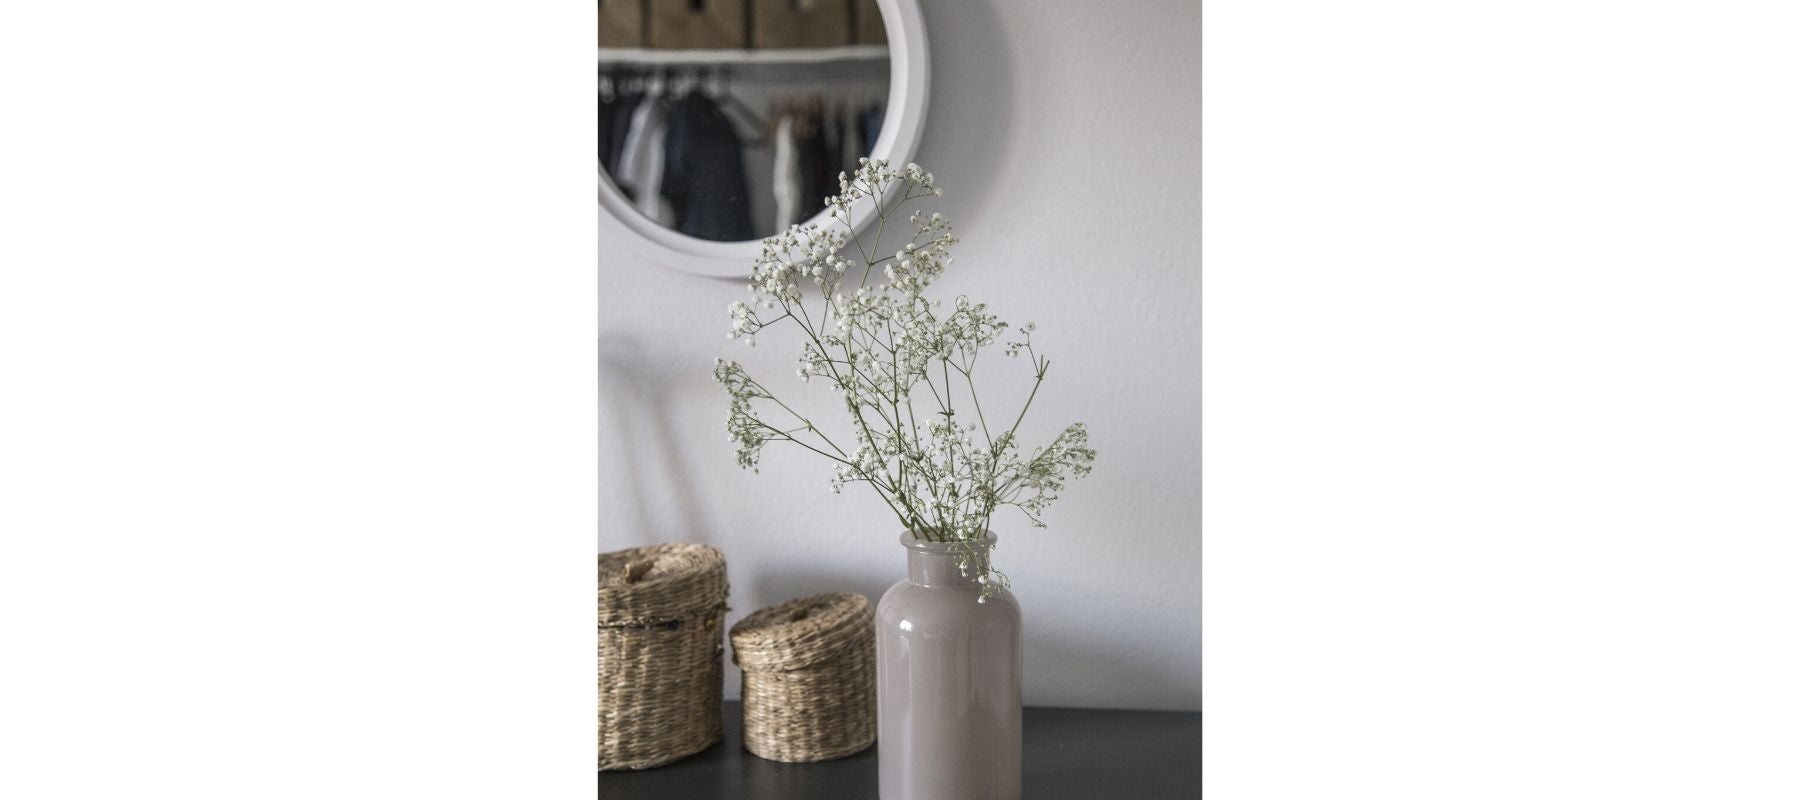 Grey vase with white flowers